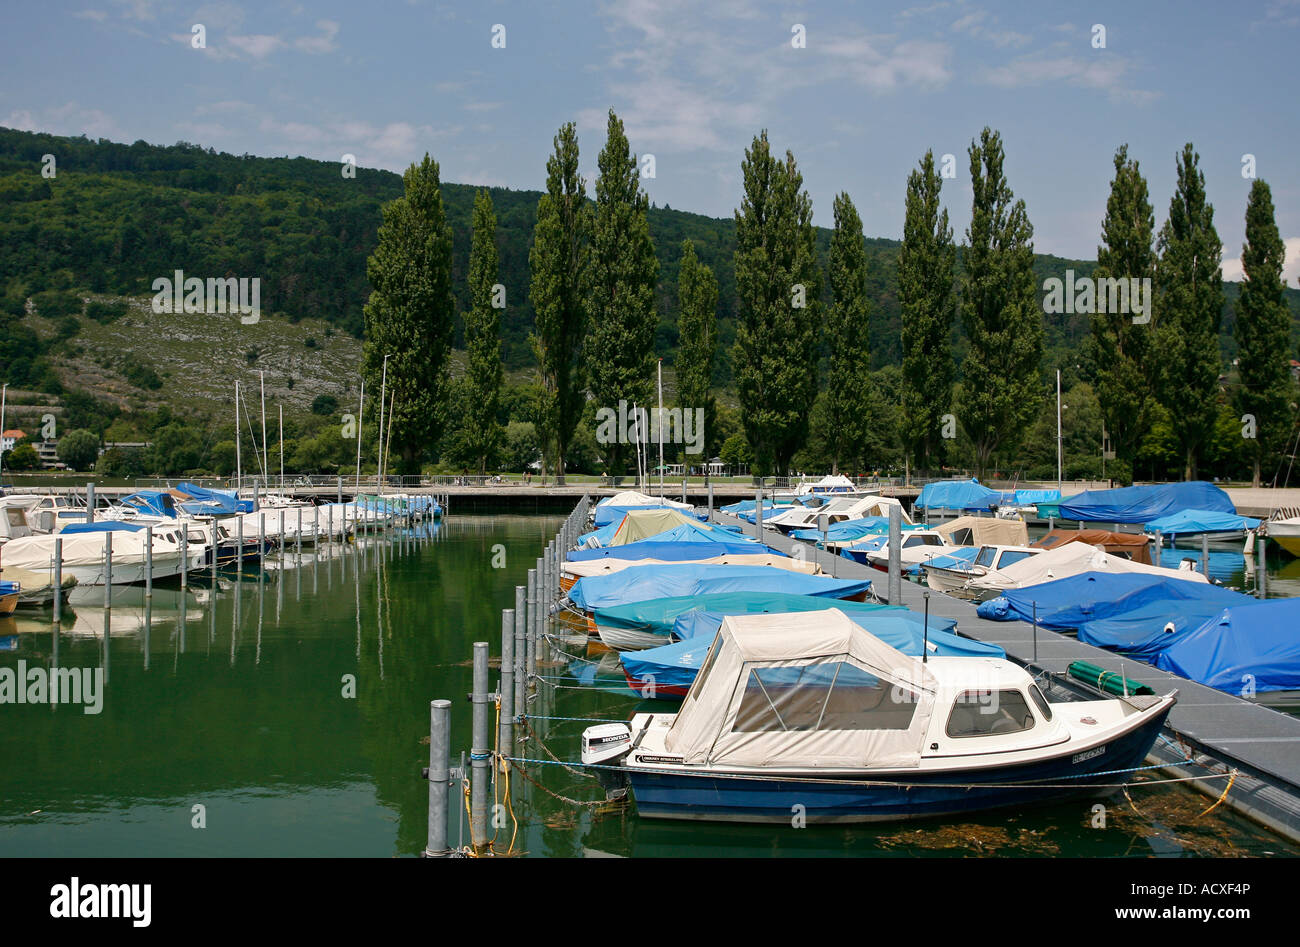 Marina in Biel Bienne Switzerland Europe - Stock Image